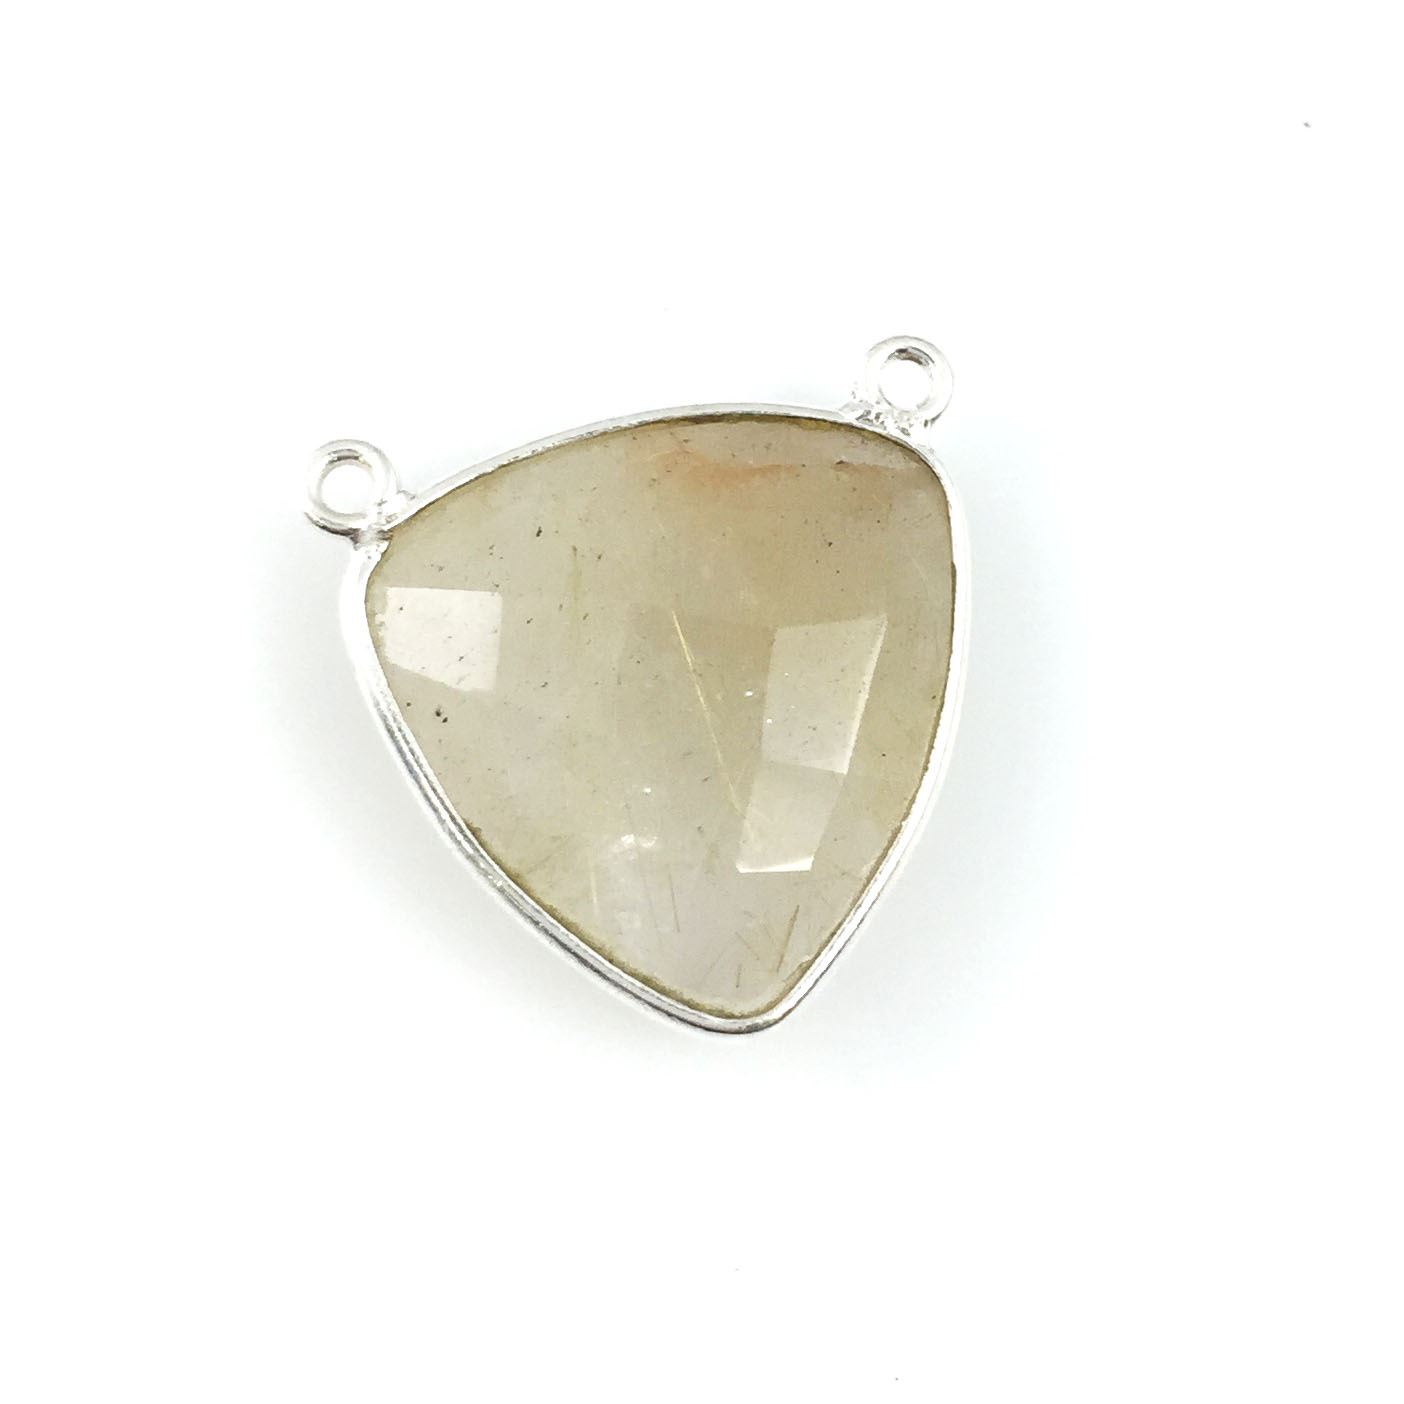 Bezel Gemstone Connector Pendant - Gold Rutilated Quartz - Sterling Silver - Large Trillion Shaped Faceted - 18 mm - 1 piece